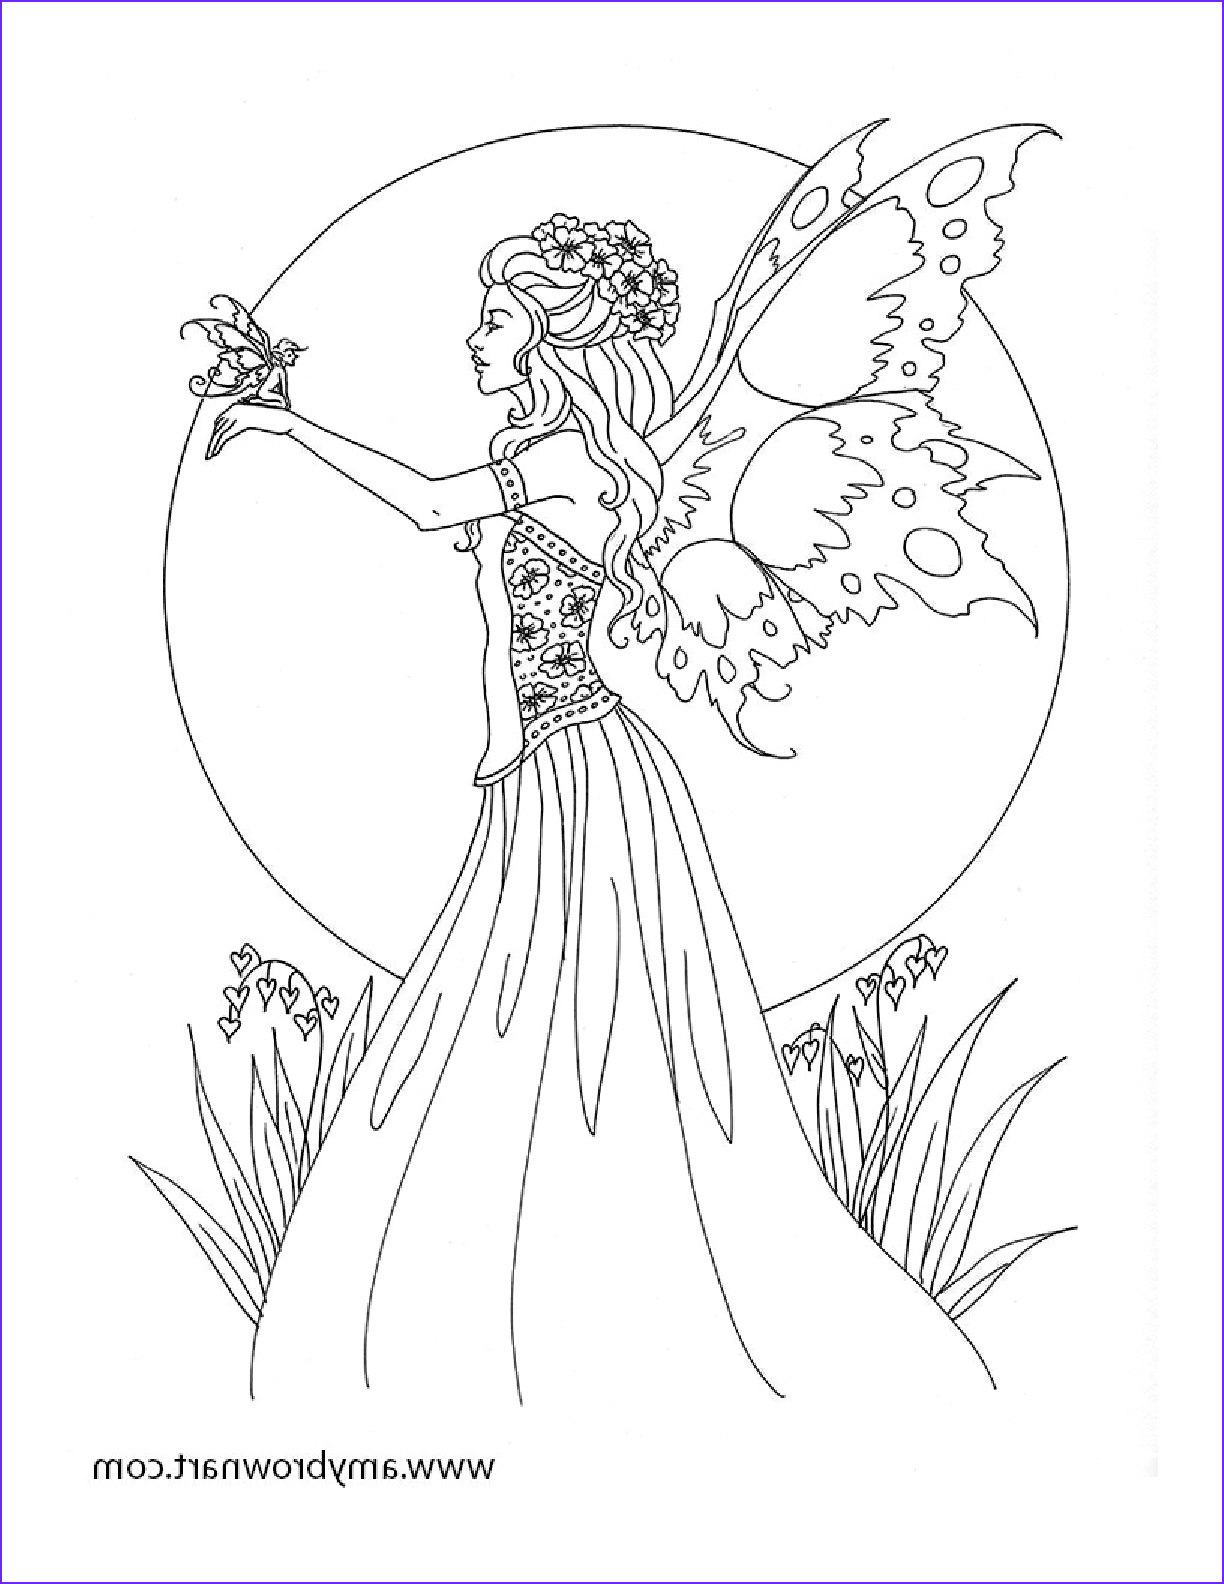 Free Printable Coloring Pages for Adults Fairies Inspirational Photos Free Amy Brown Fairy Coloring Pages